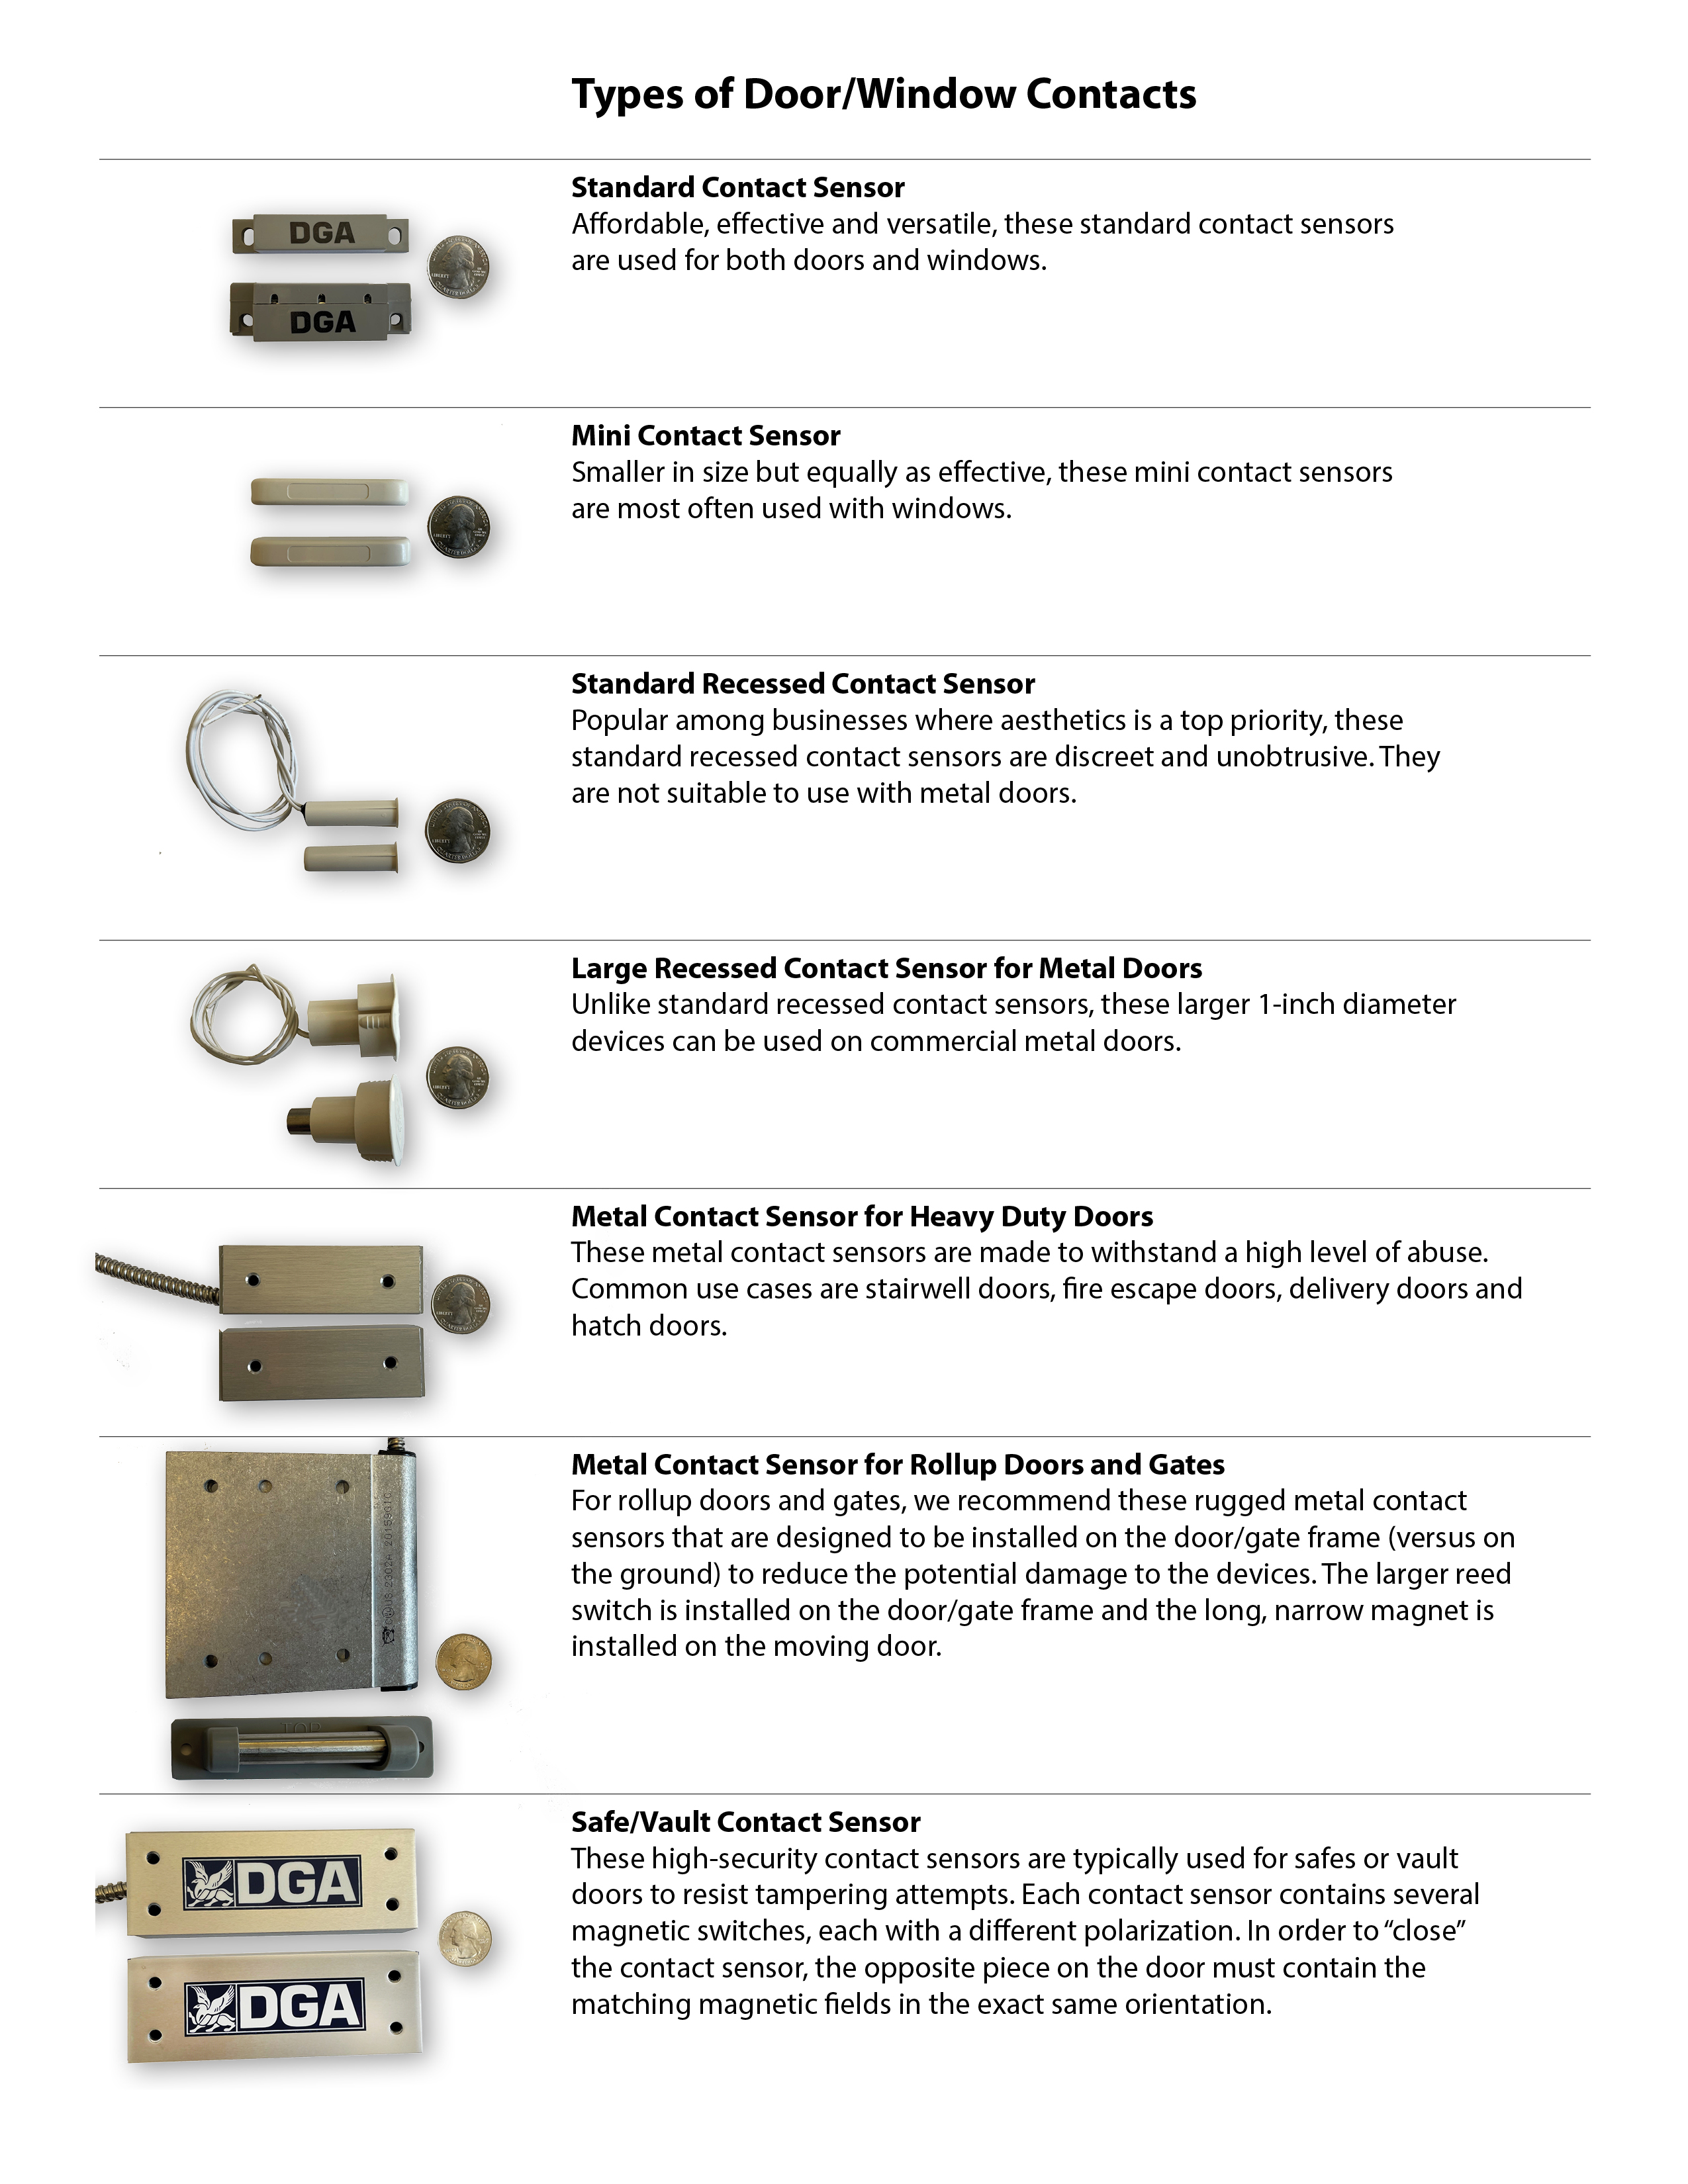 Different Door & Window Contact Sensor Types and Their Use Cases Chart Diagram